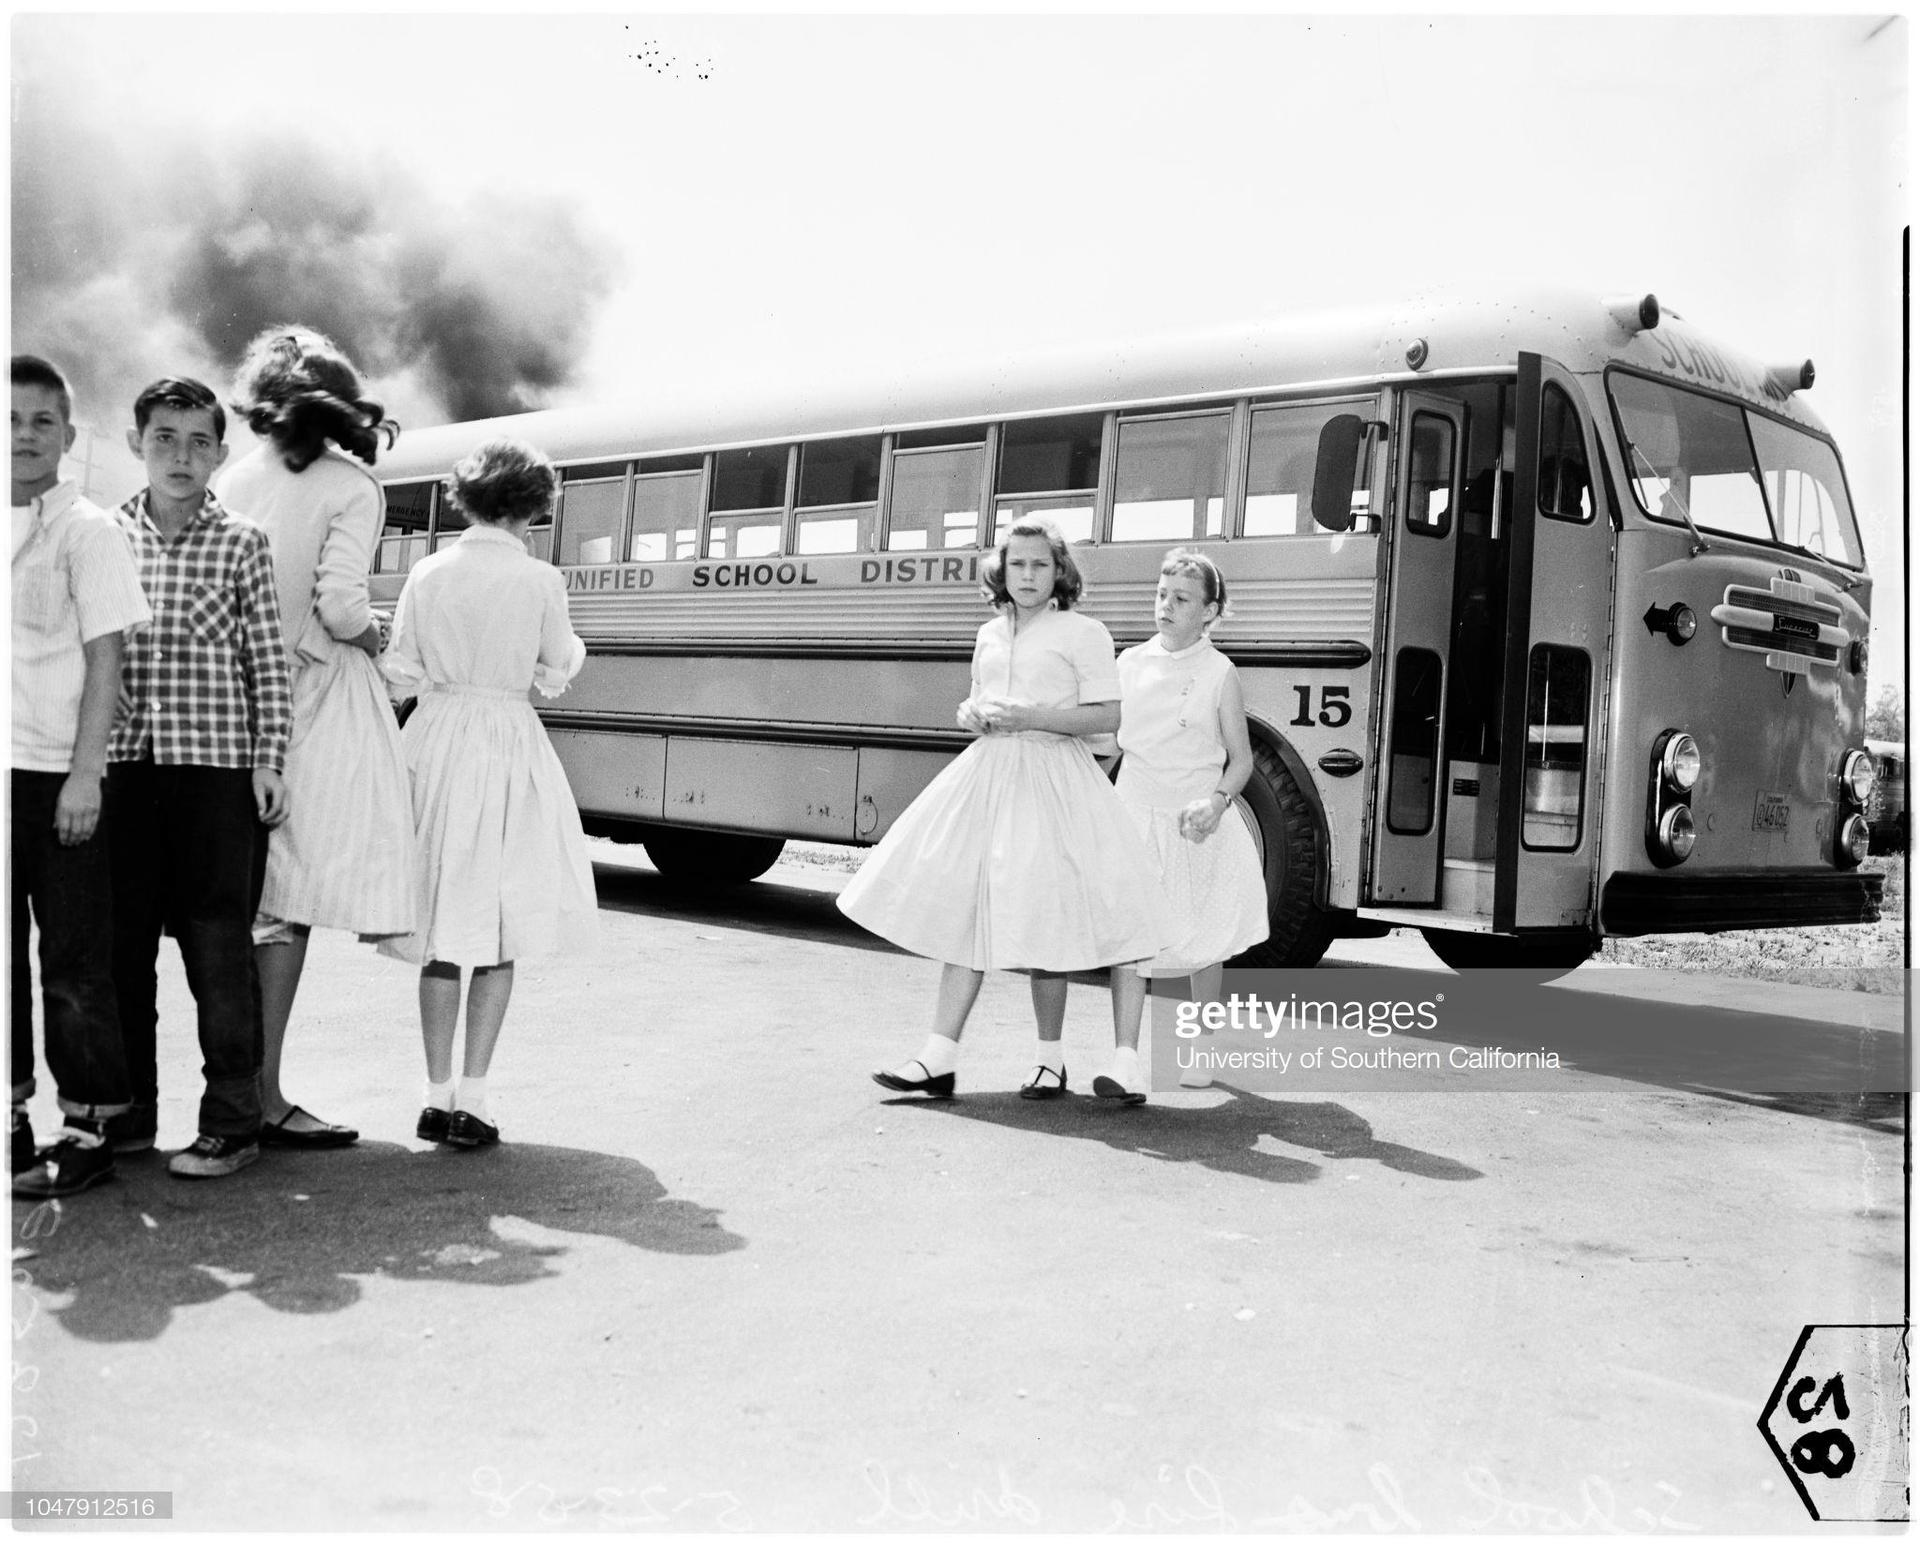 vintage school bus photo